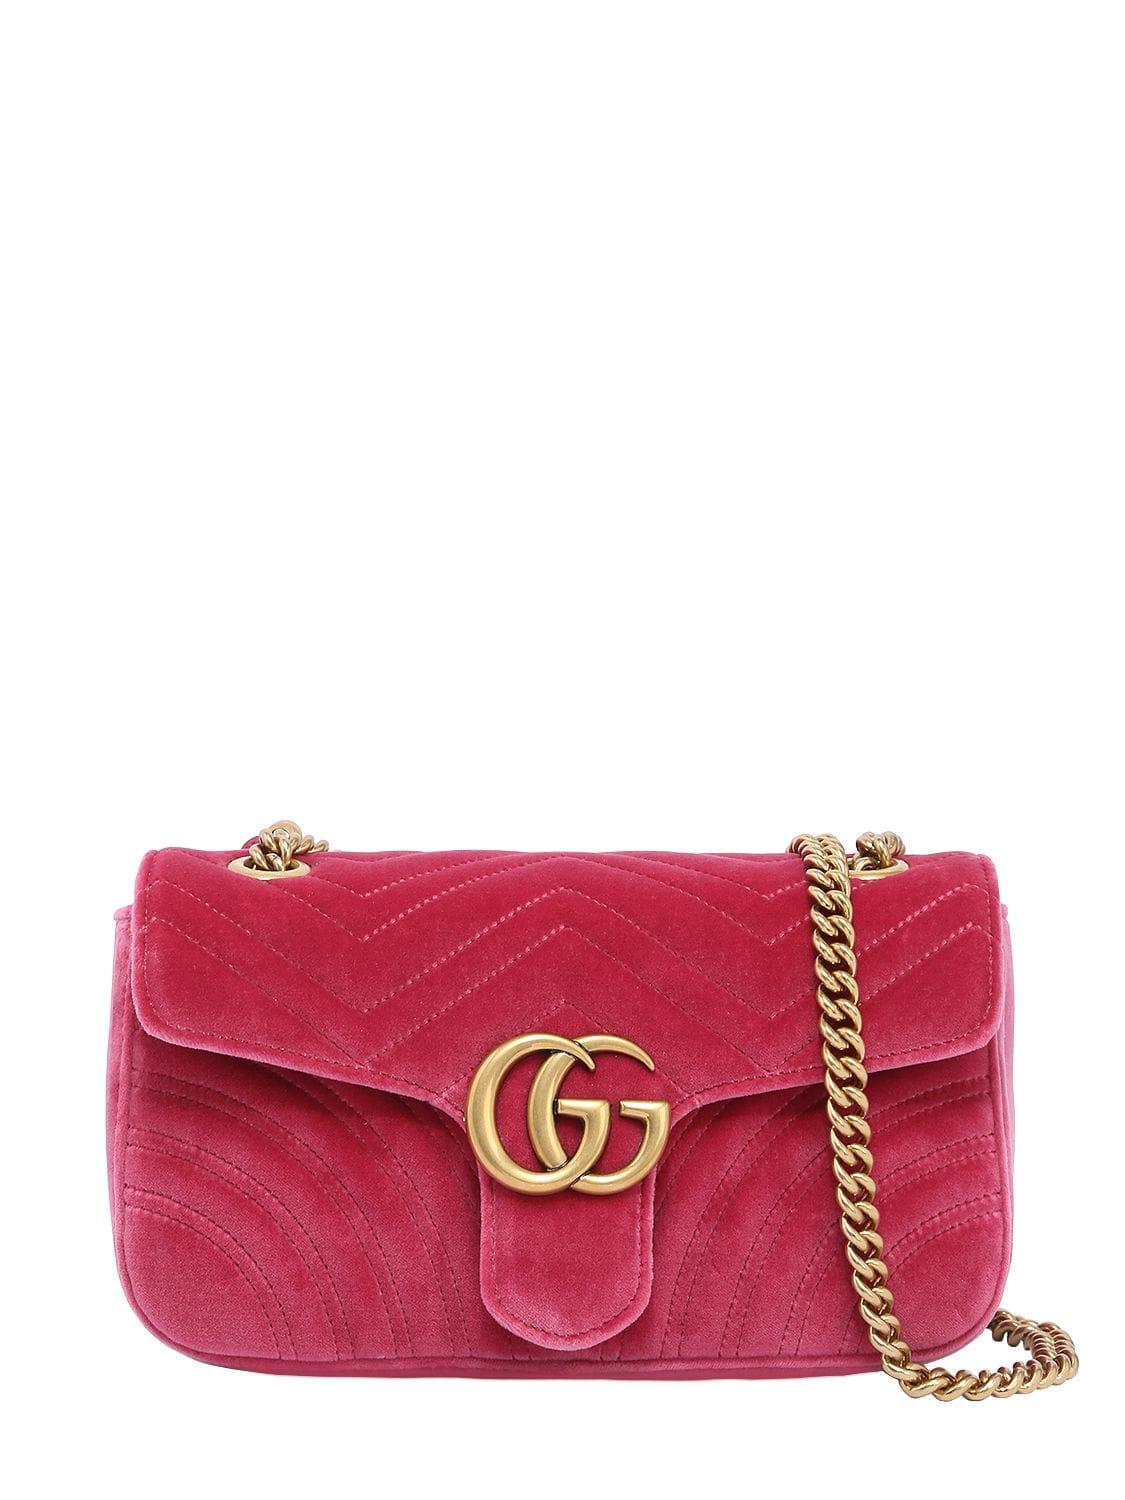 56a062c65 Gucci Small Gg Marmont 2.0 Velvet Shoulder Bag in Pink - Save 11% - Lyst